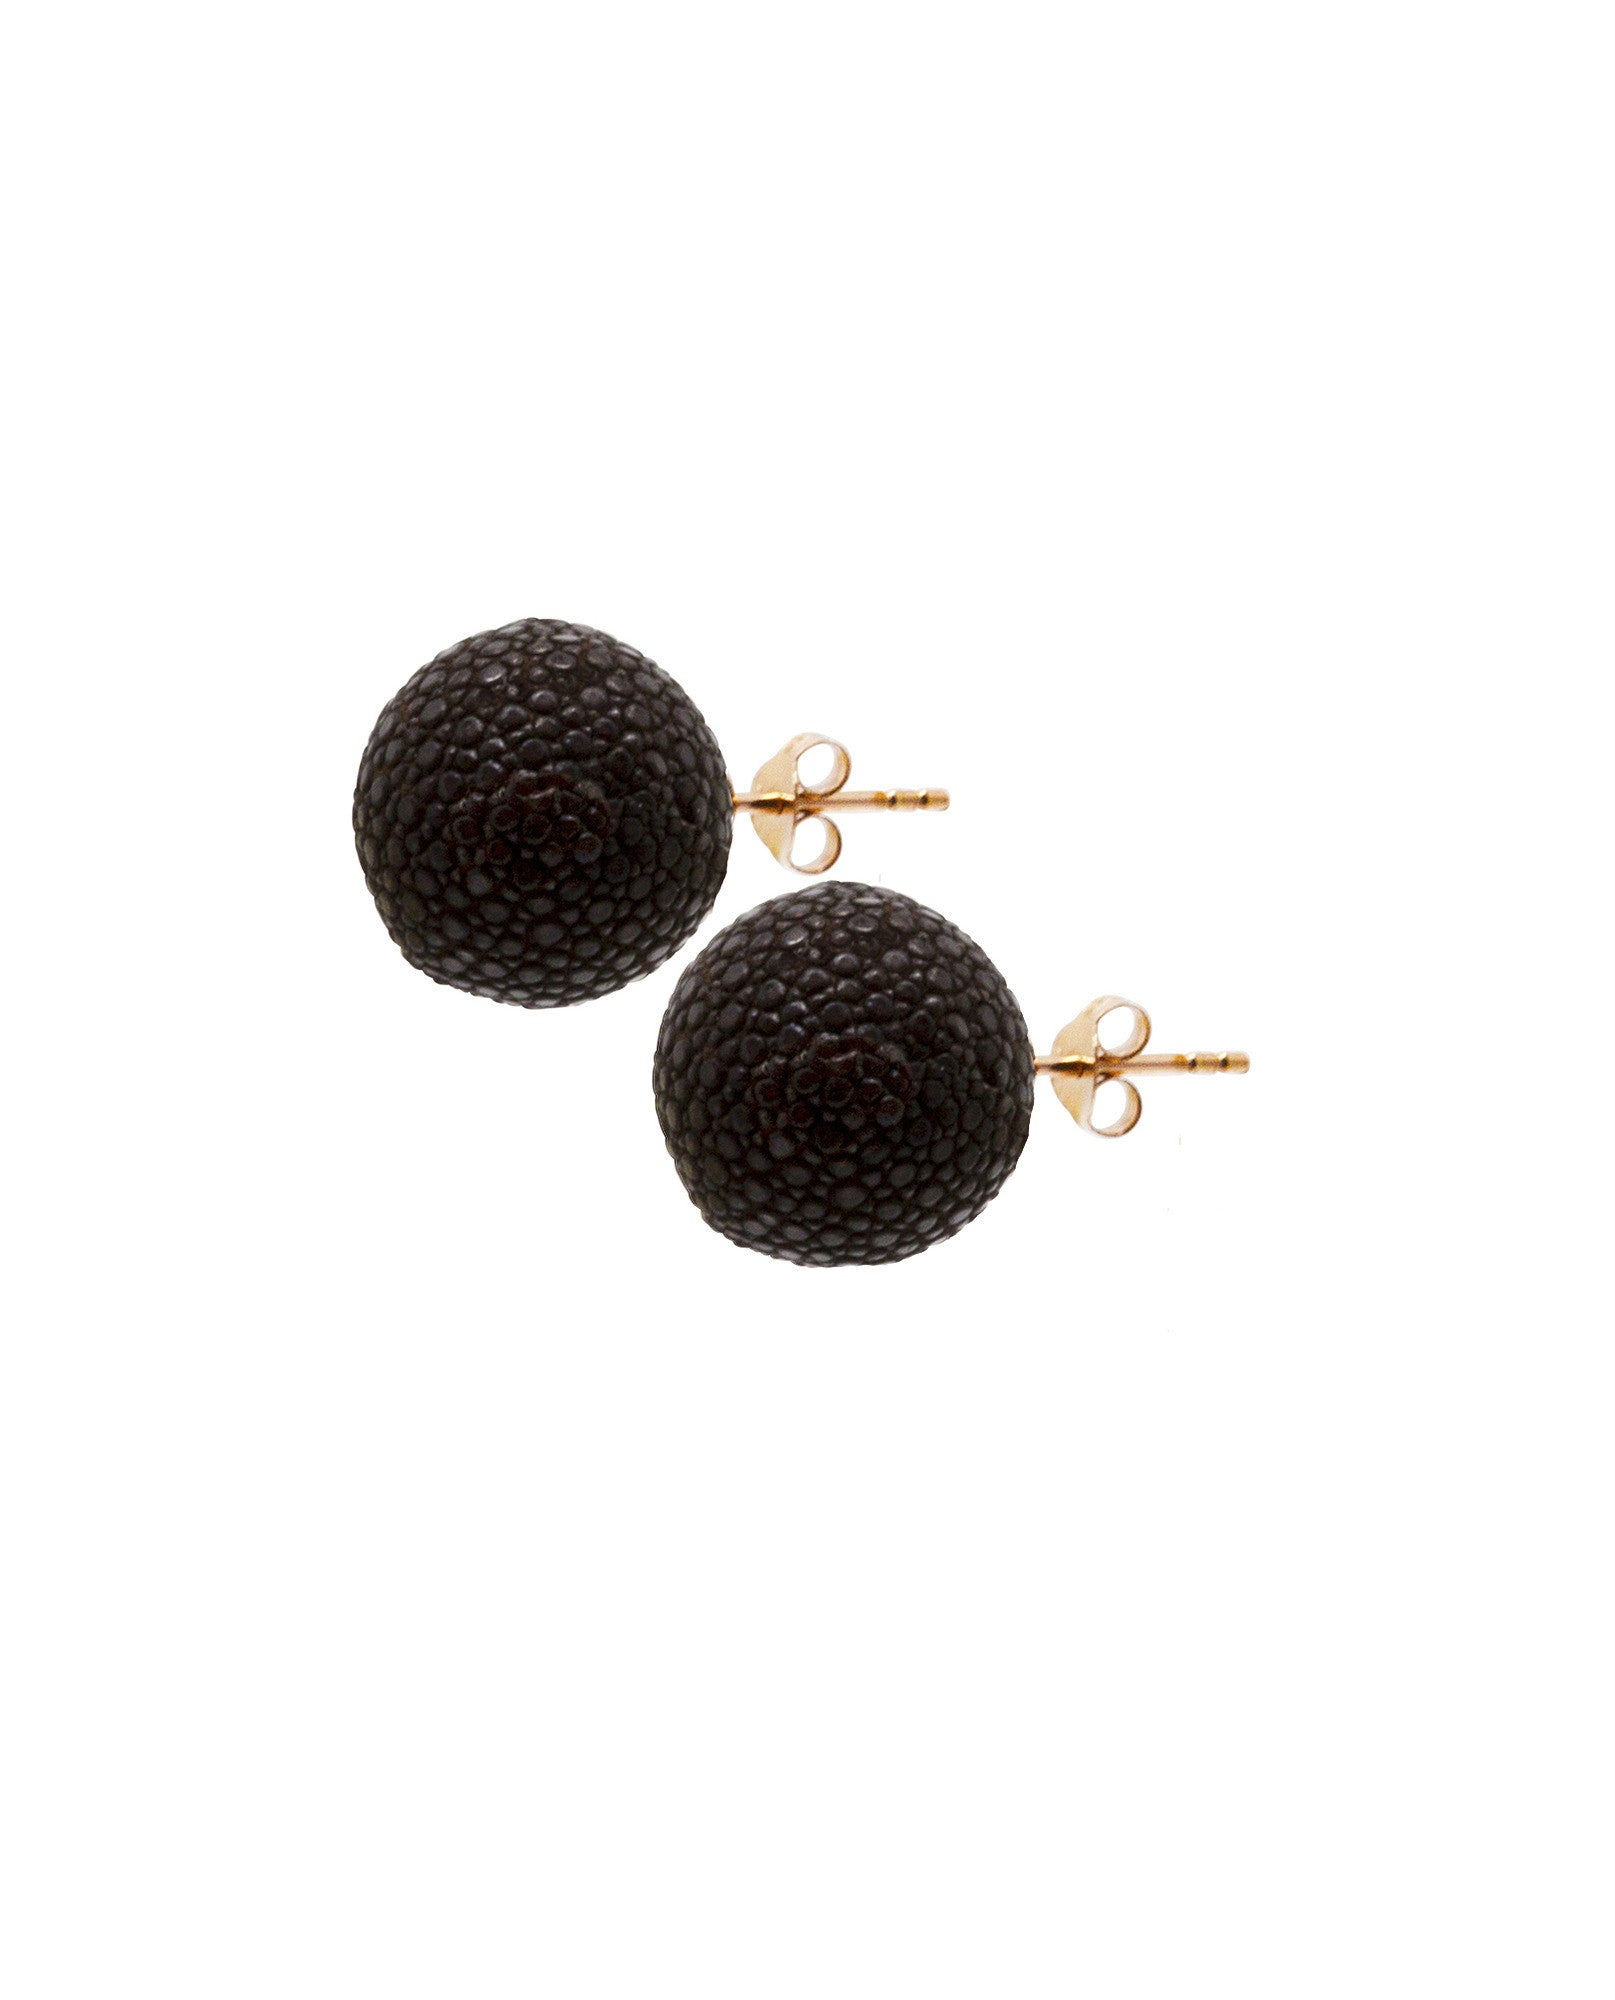 Elan Bijoux - Chocolate Stud Earrings - The Velvet Closet